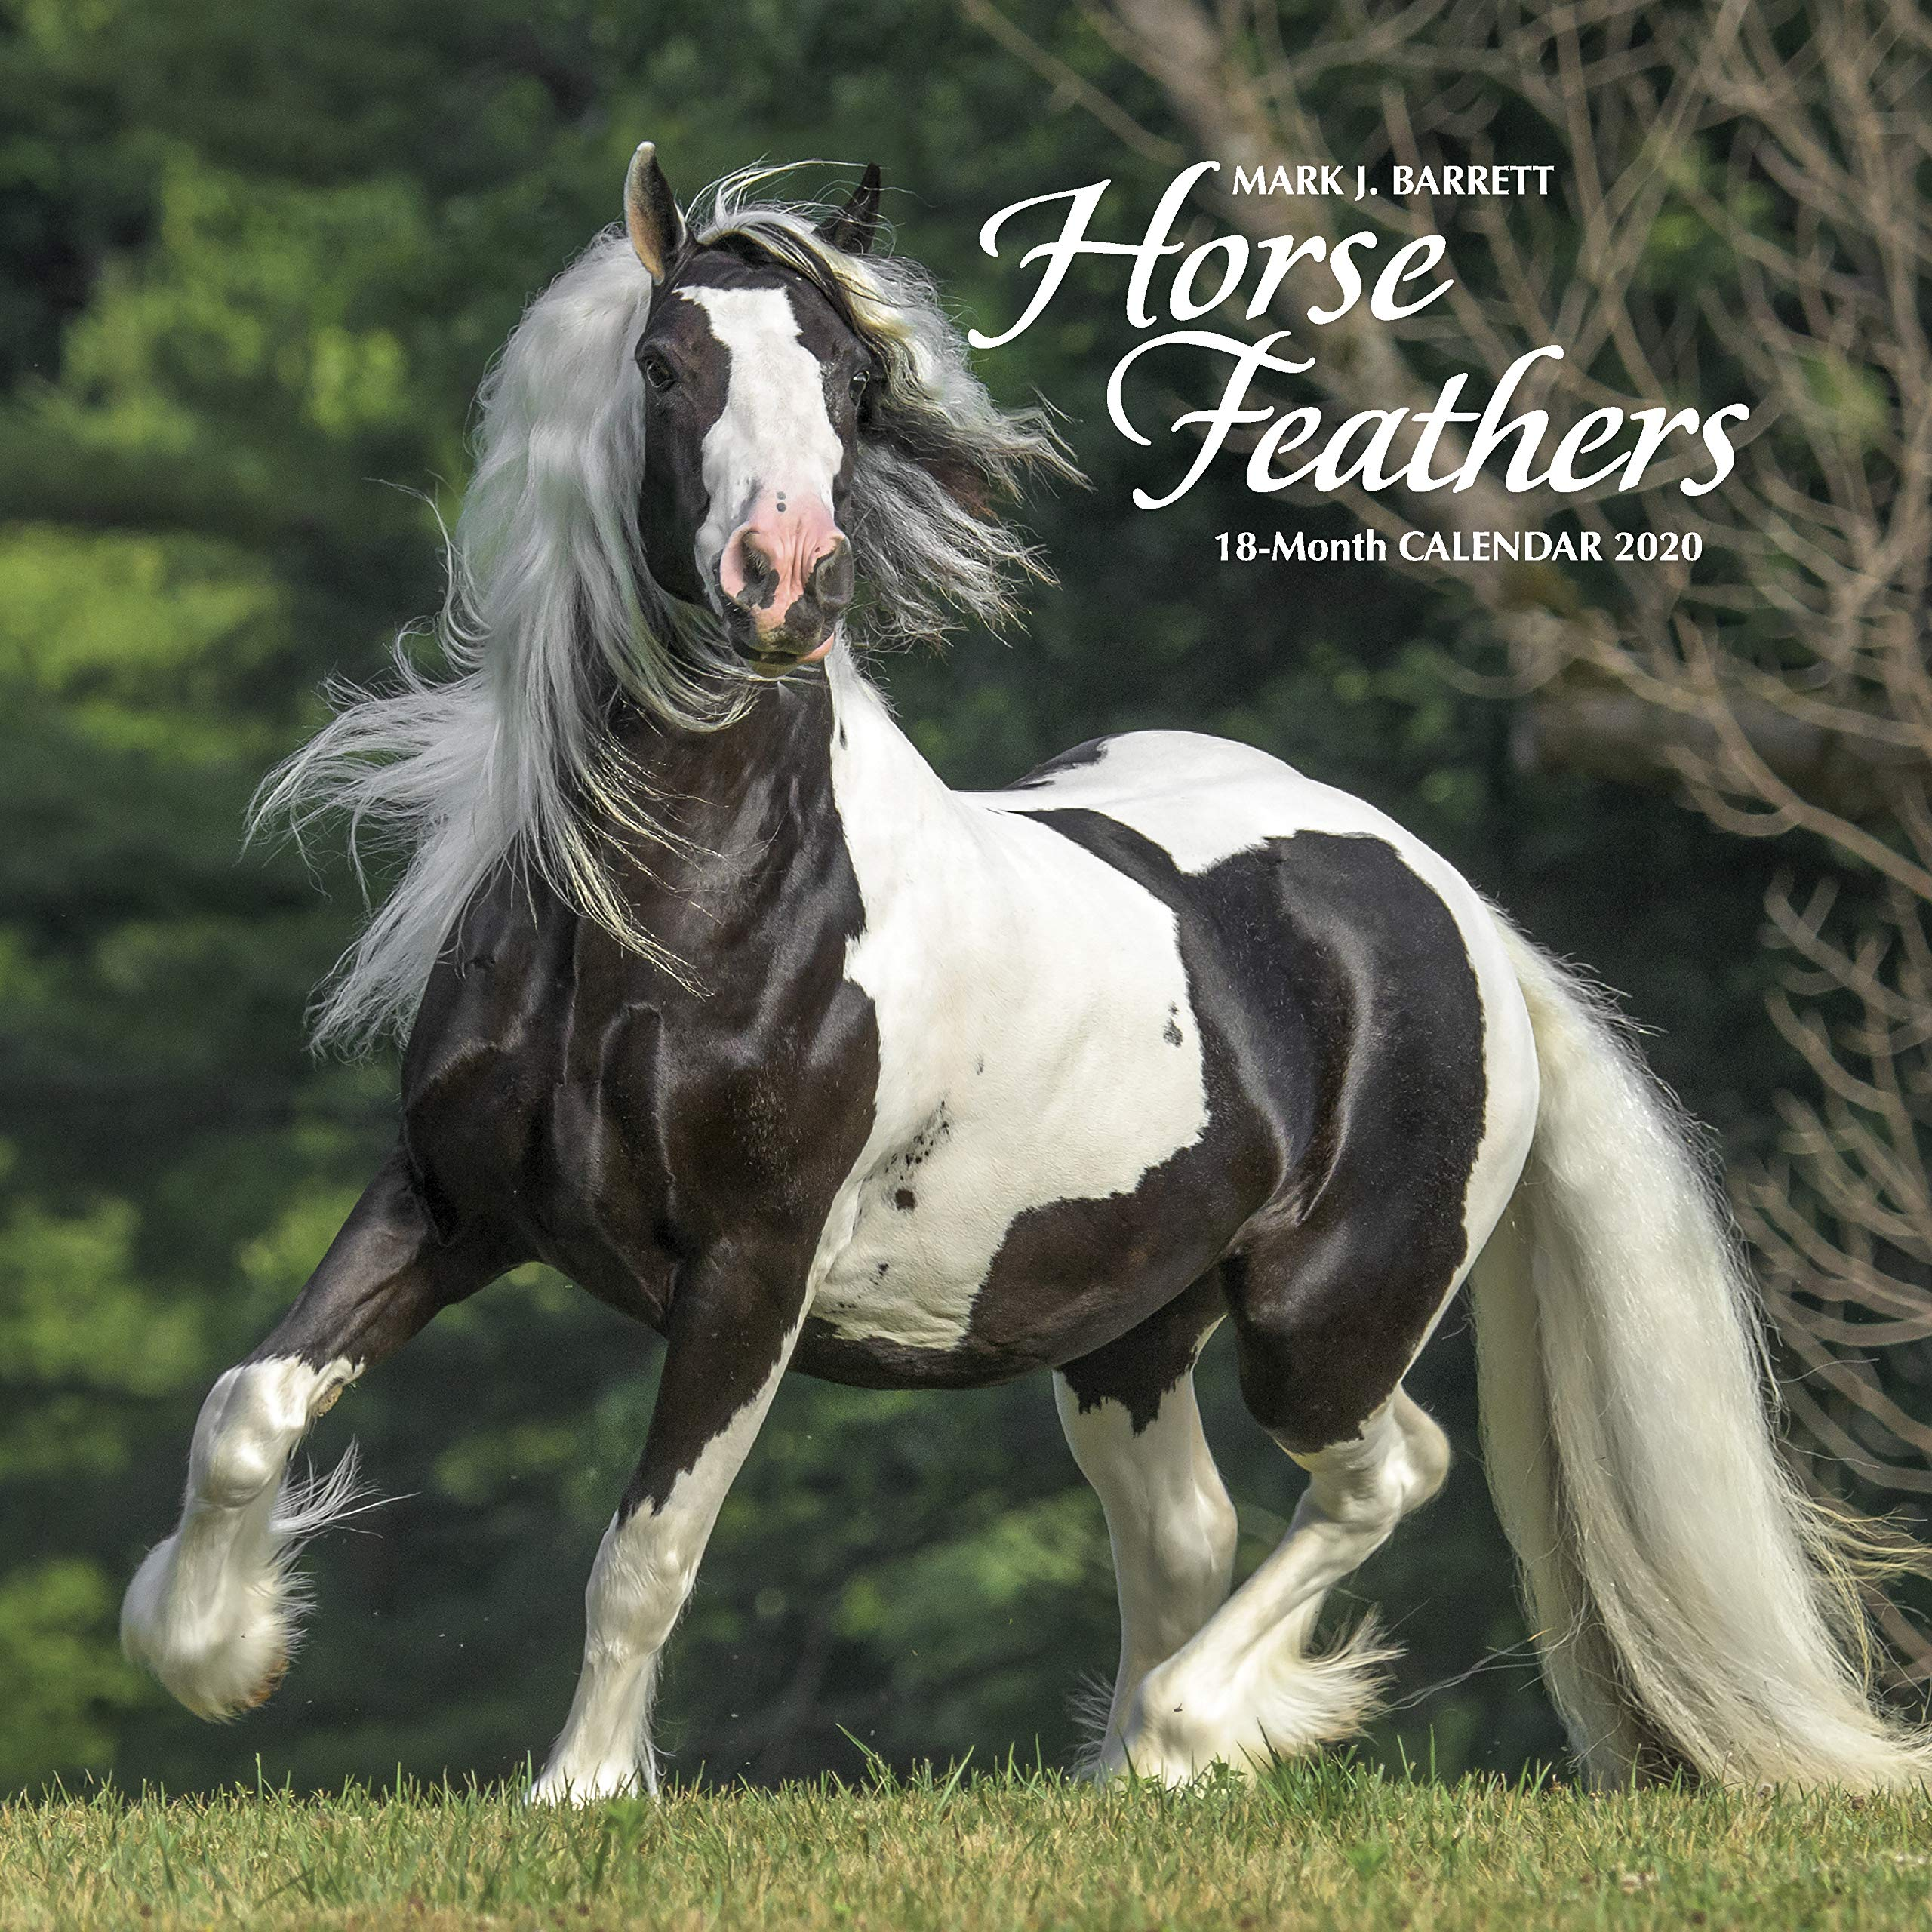 Horse Calendar 2020 Horse Feathers 2020 Wall Calendar: Willow Creek Press